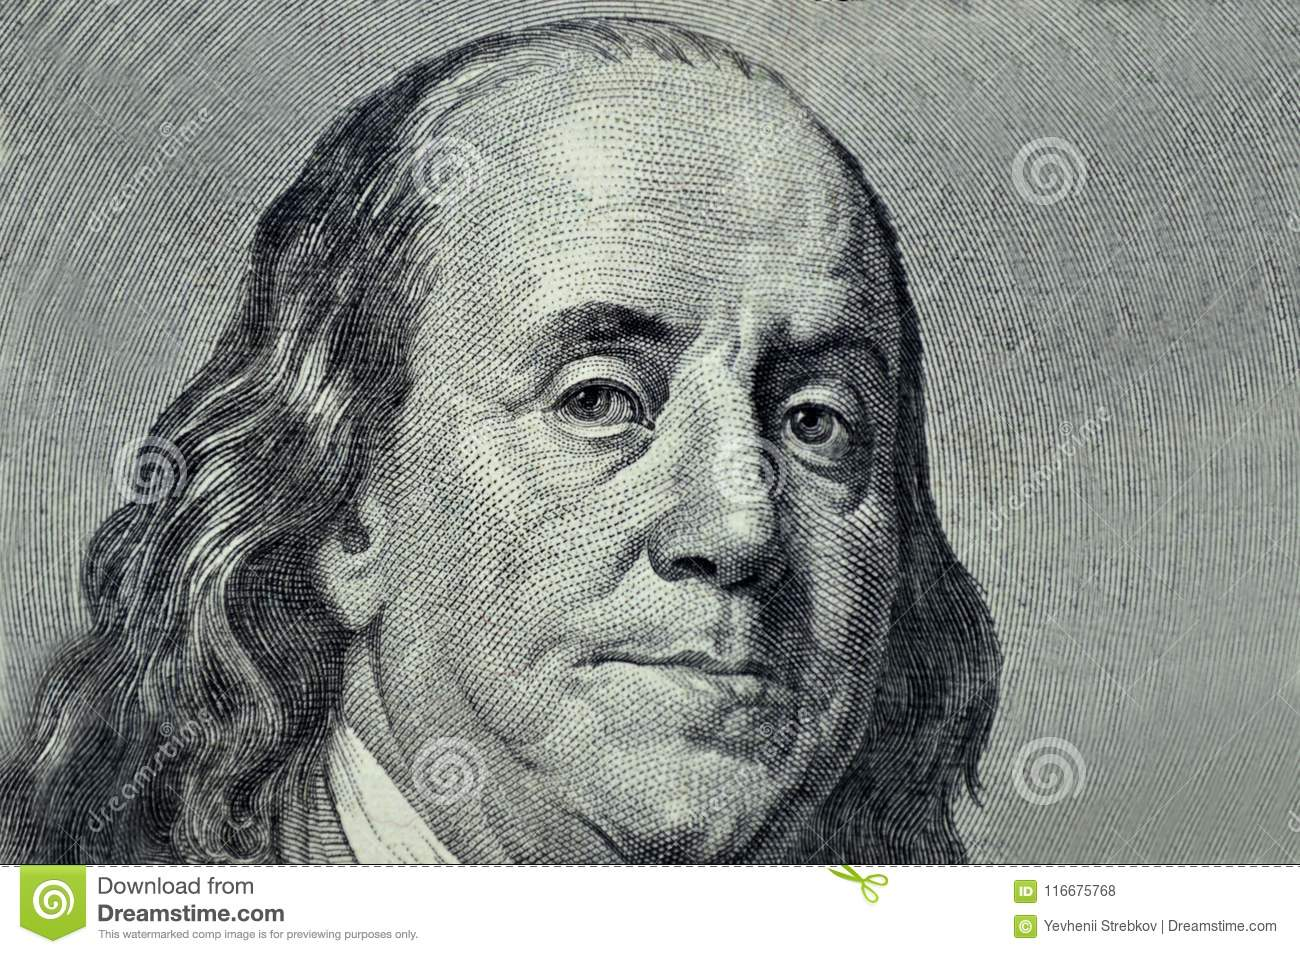 Benjamin Franklin close-up on a gray background